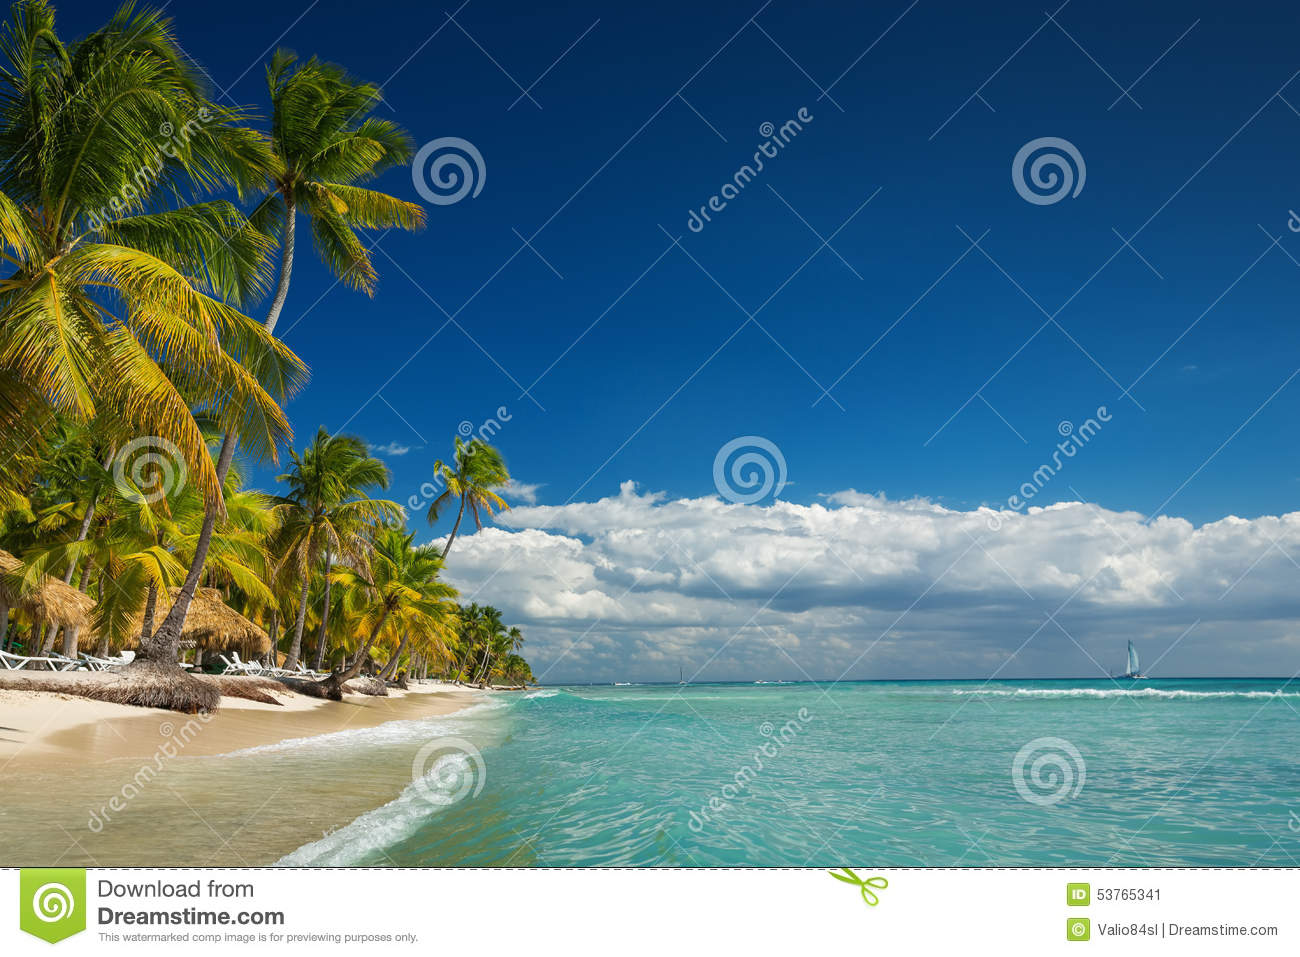 Tropical landscape of paradise lonely island beach